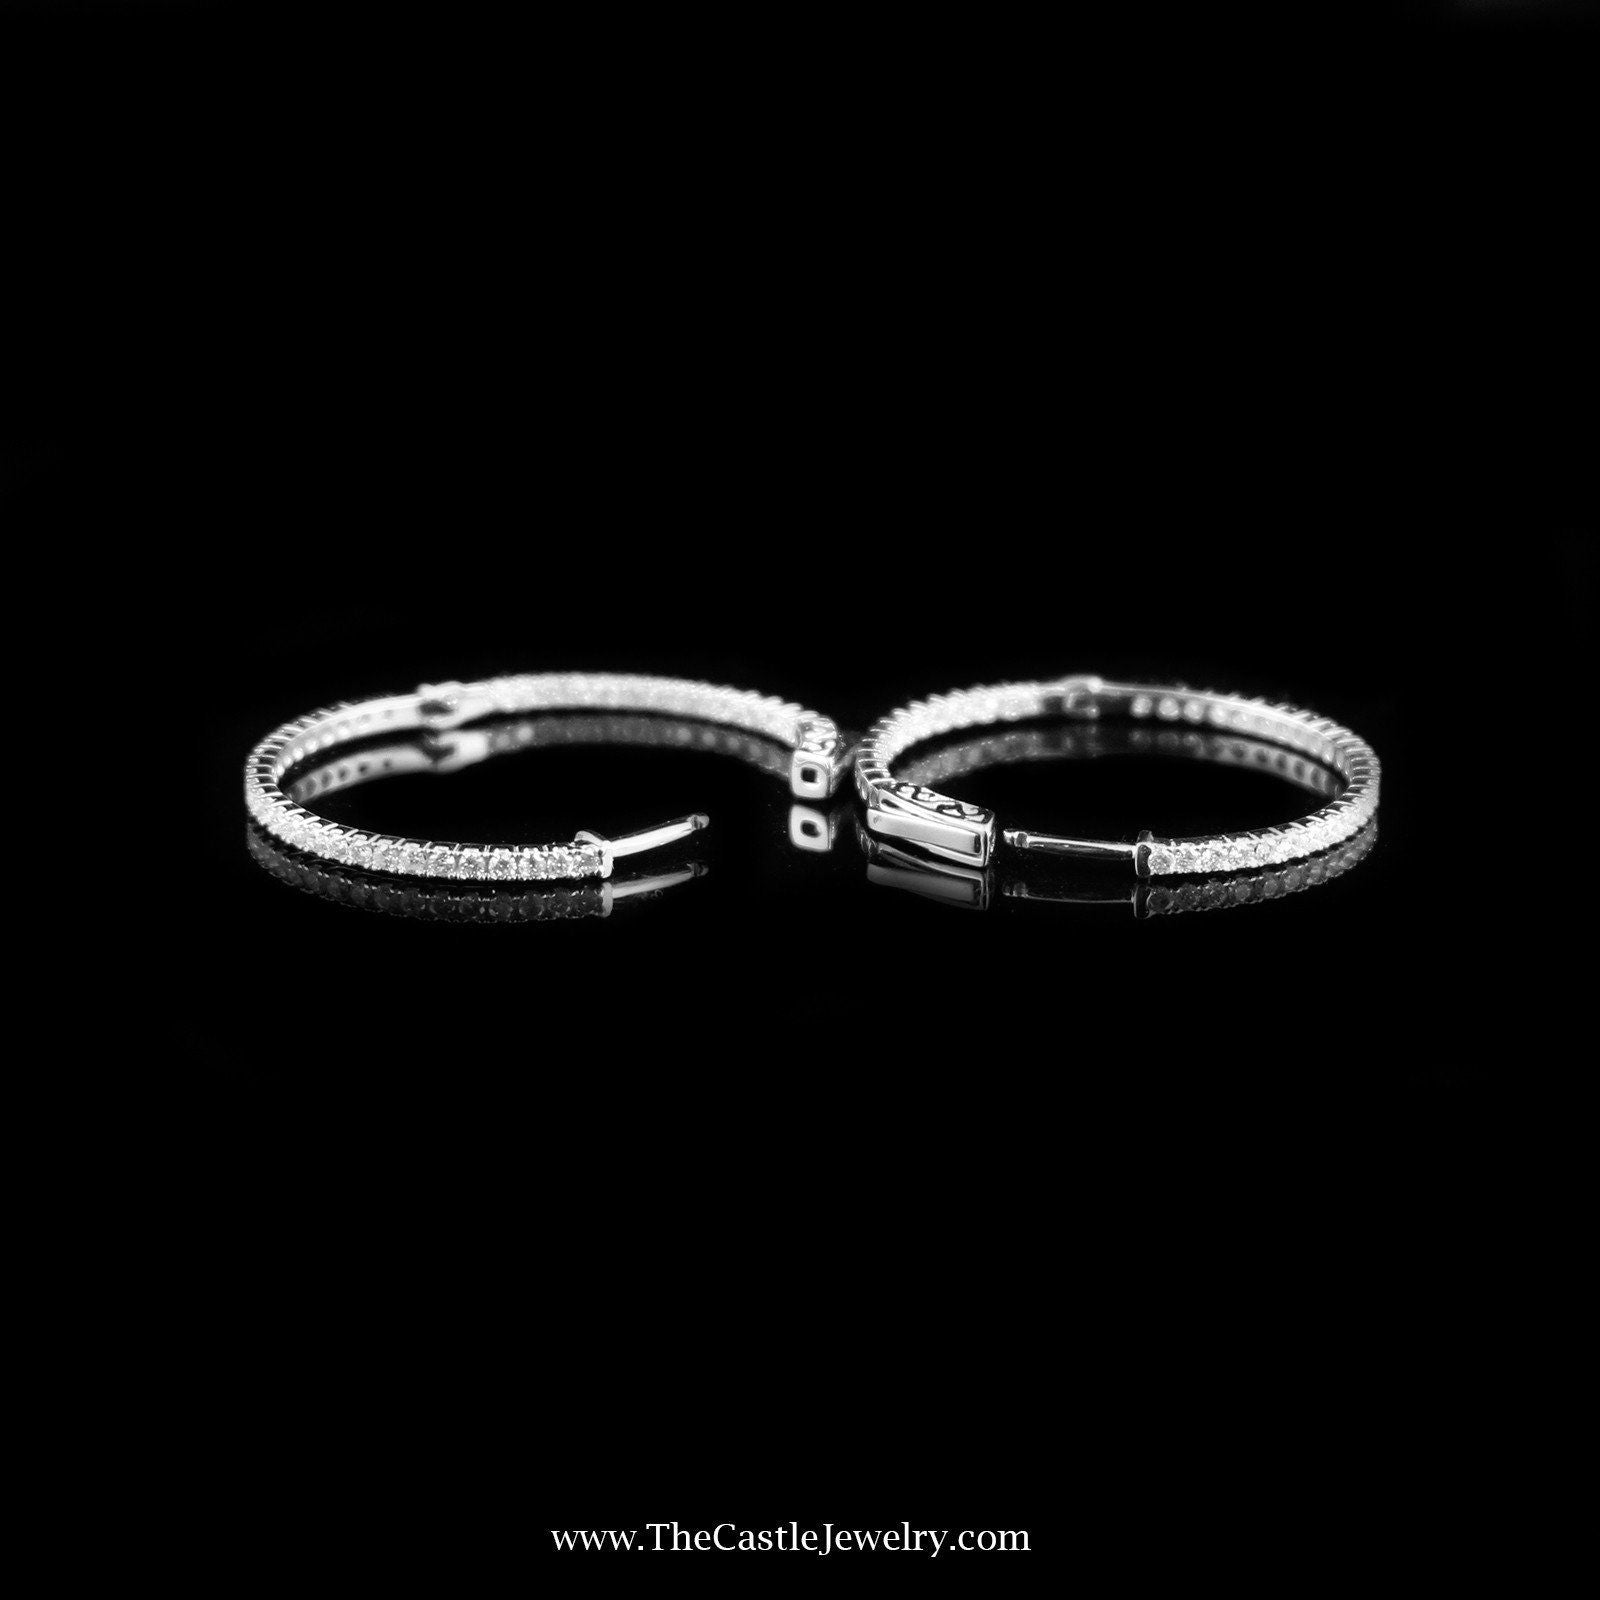 SPECIAL! Stunning In & Out 1cttw Diamond Hoops in 14K White Gold-1